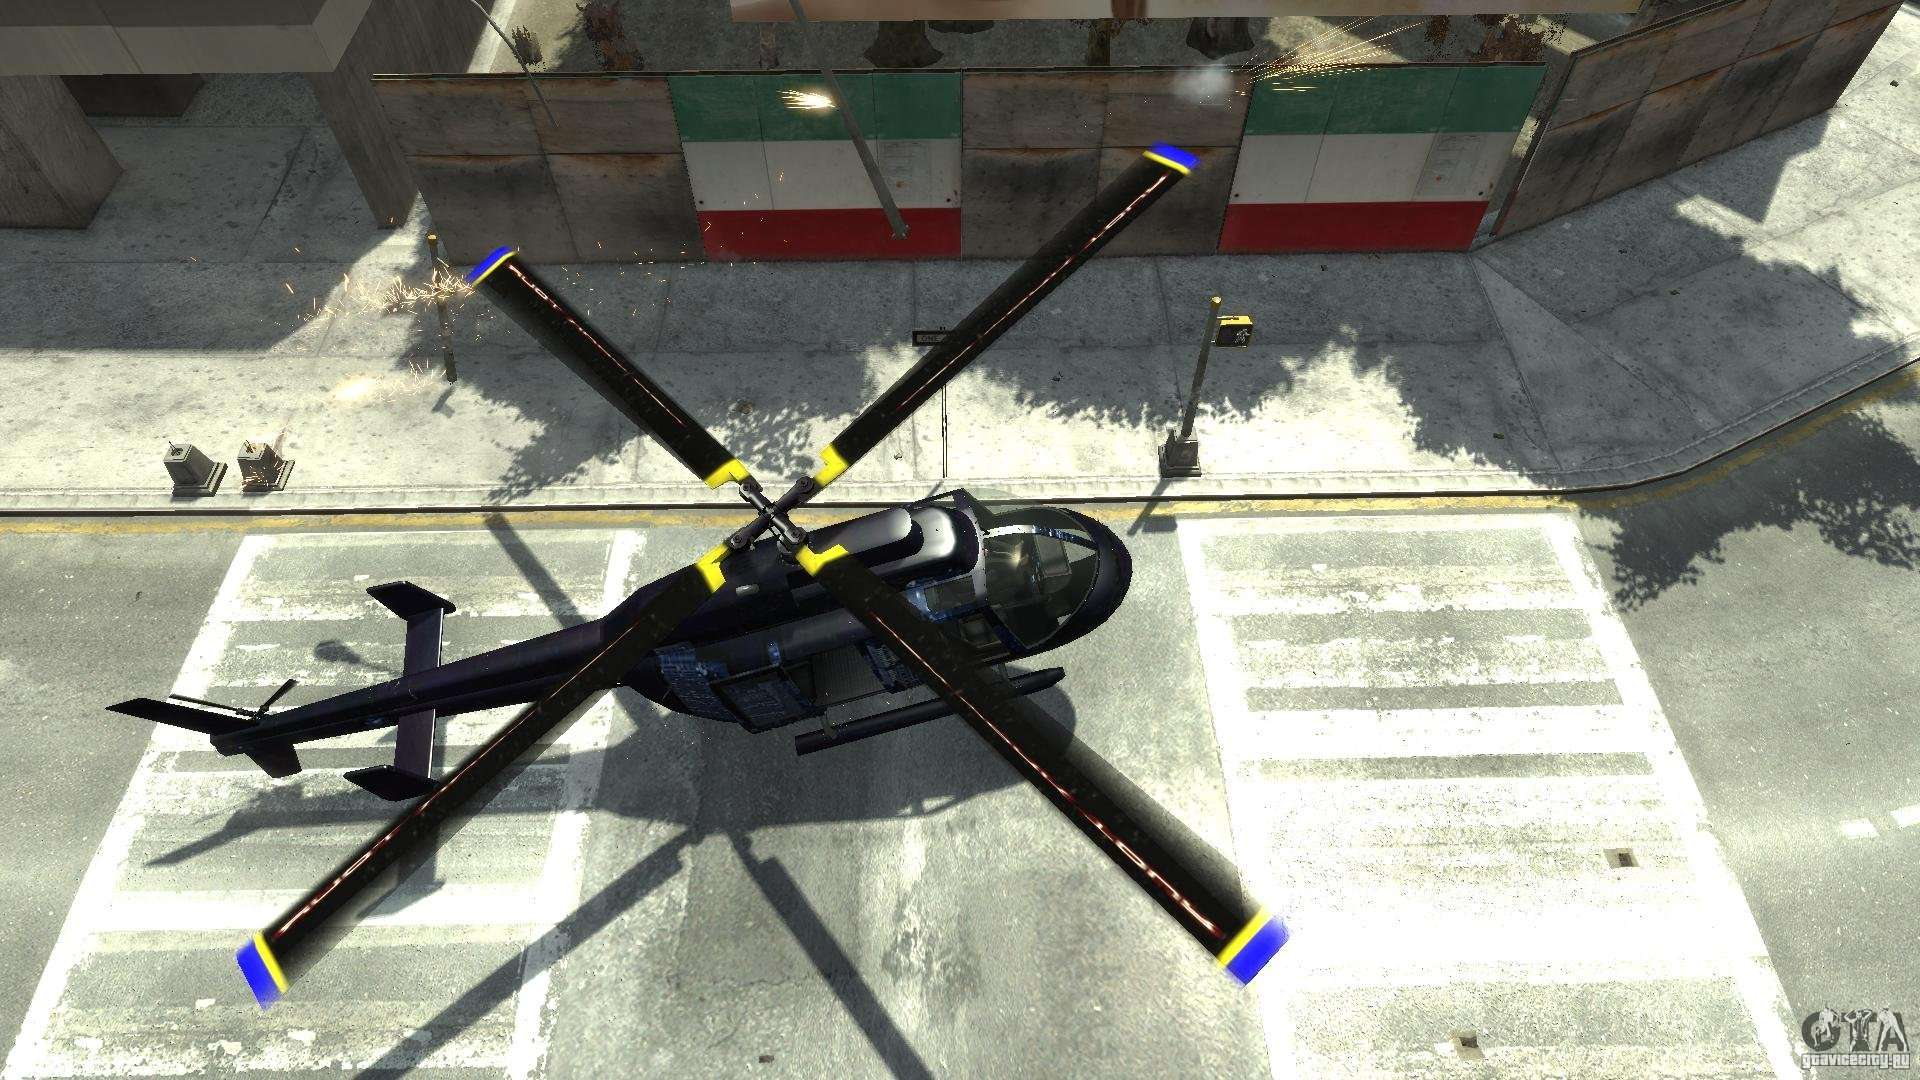 gta 4 helicopter tours with 5902 Nyc Helitours Texture on 4488 Balloon Tours Option 4 further Barracuda also Page 2 moreover 5902 Nyc Helitours Texture furthermore .